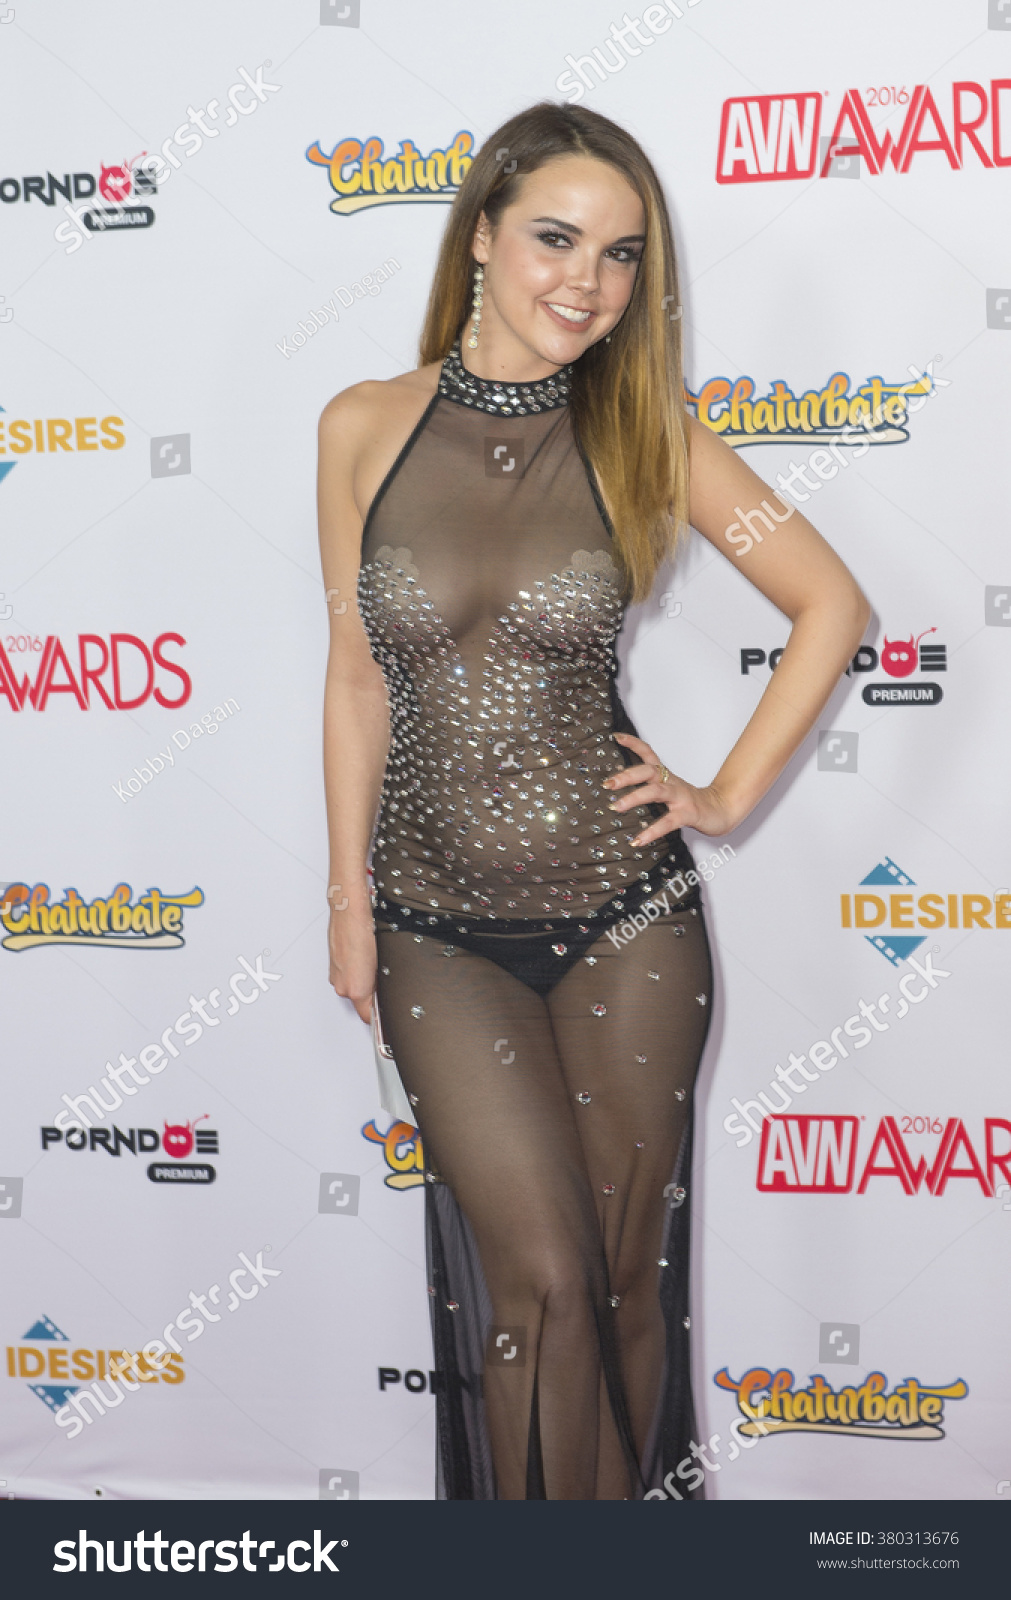 Believe, that las vegas adult video award 2006